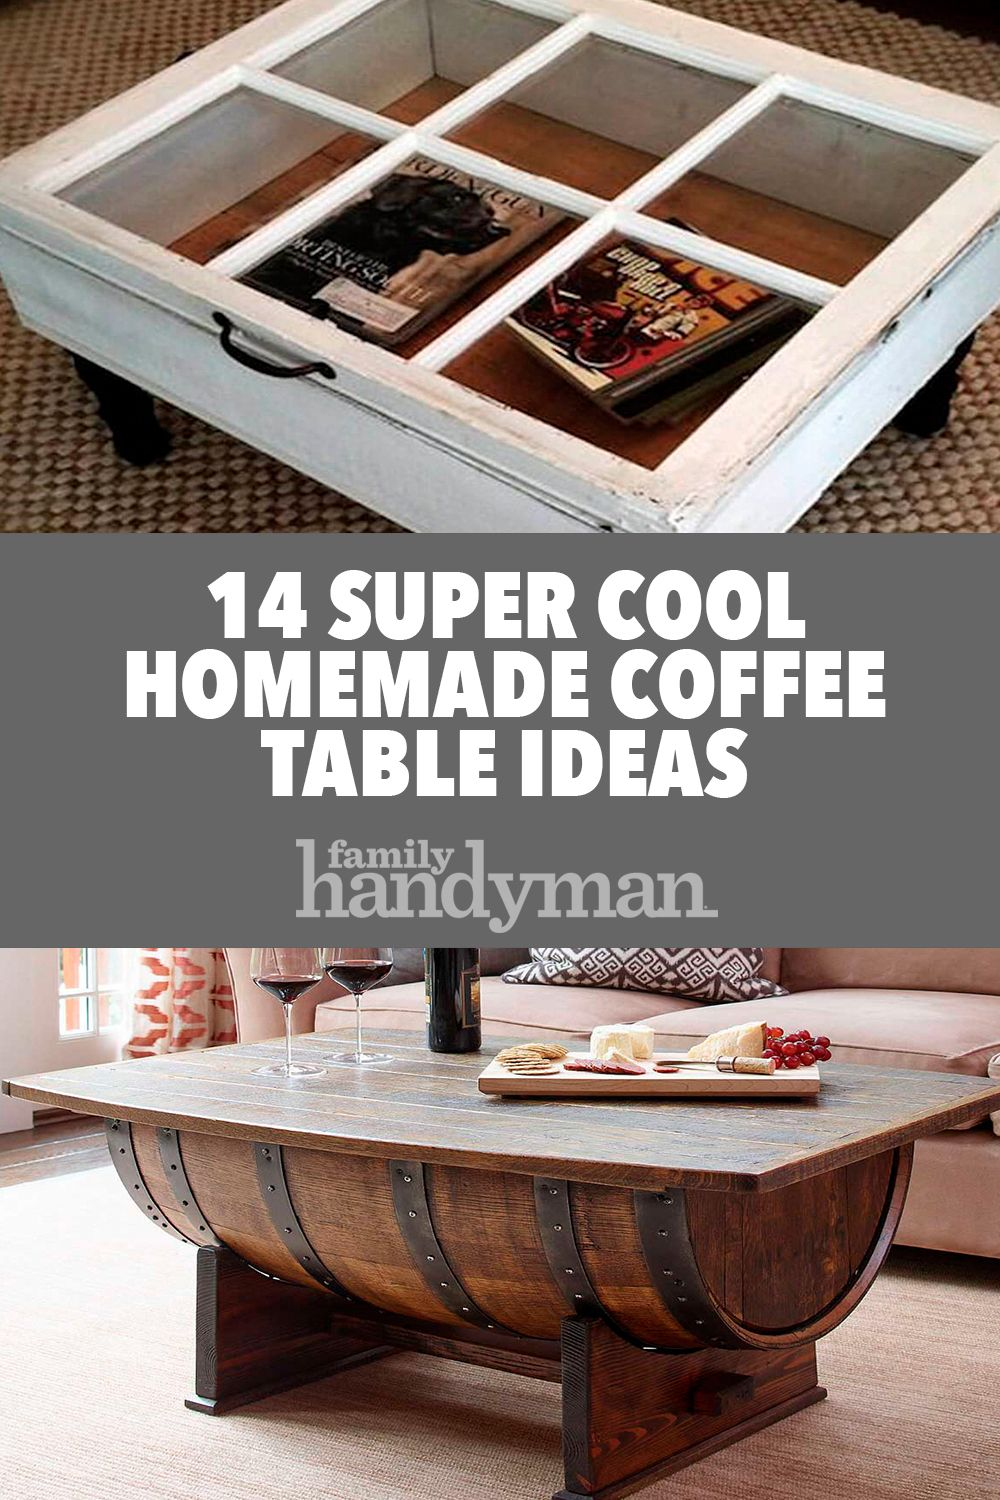 Unique Coffee Table Decor 14 Super Cool Homemade Coffee Table Ideas Diy Advice Blog